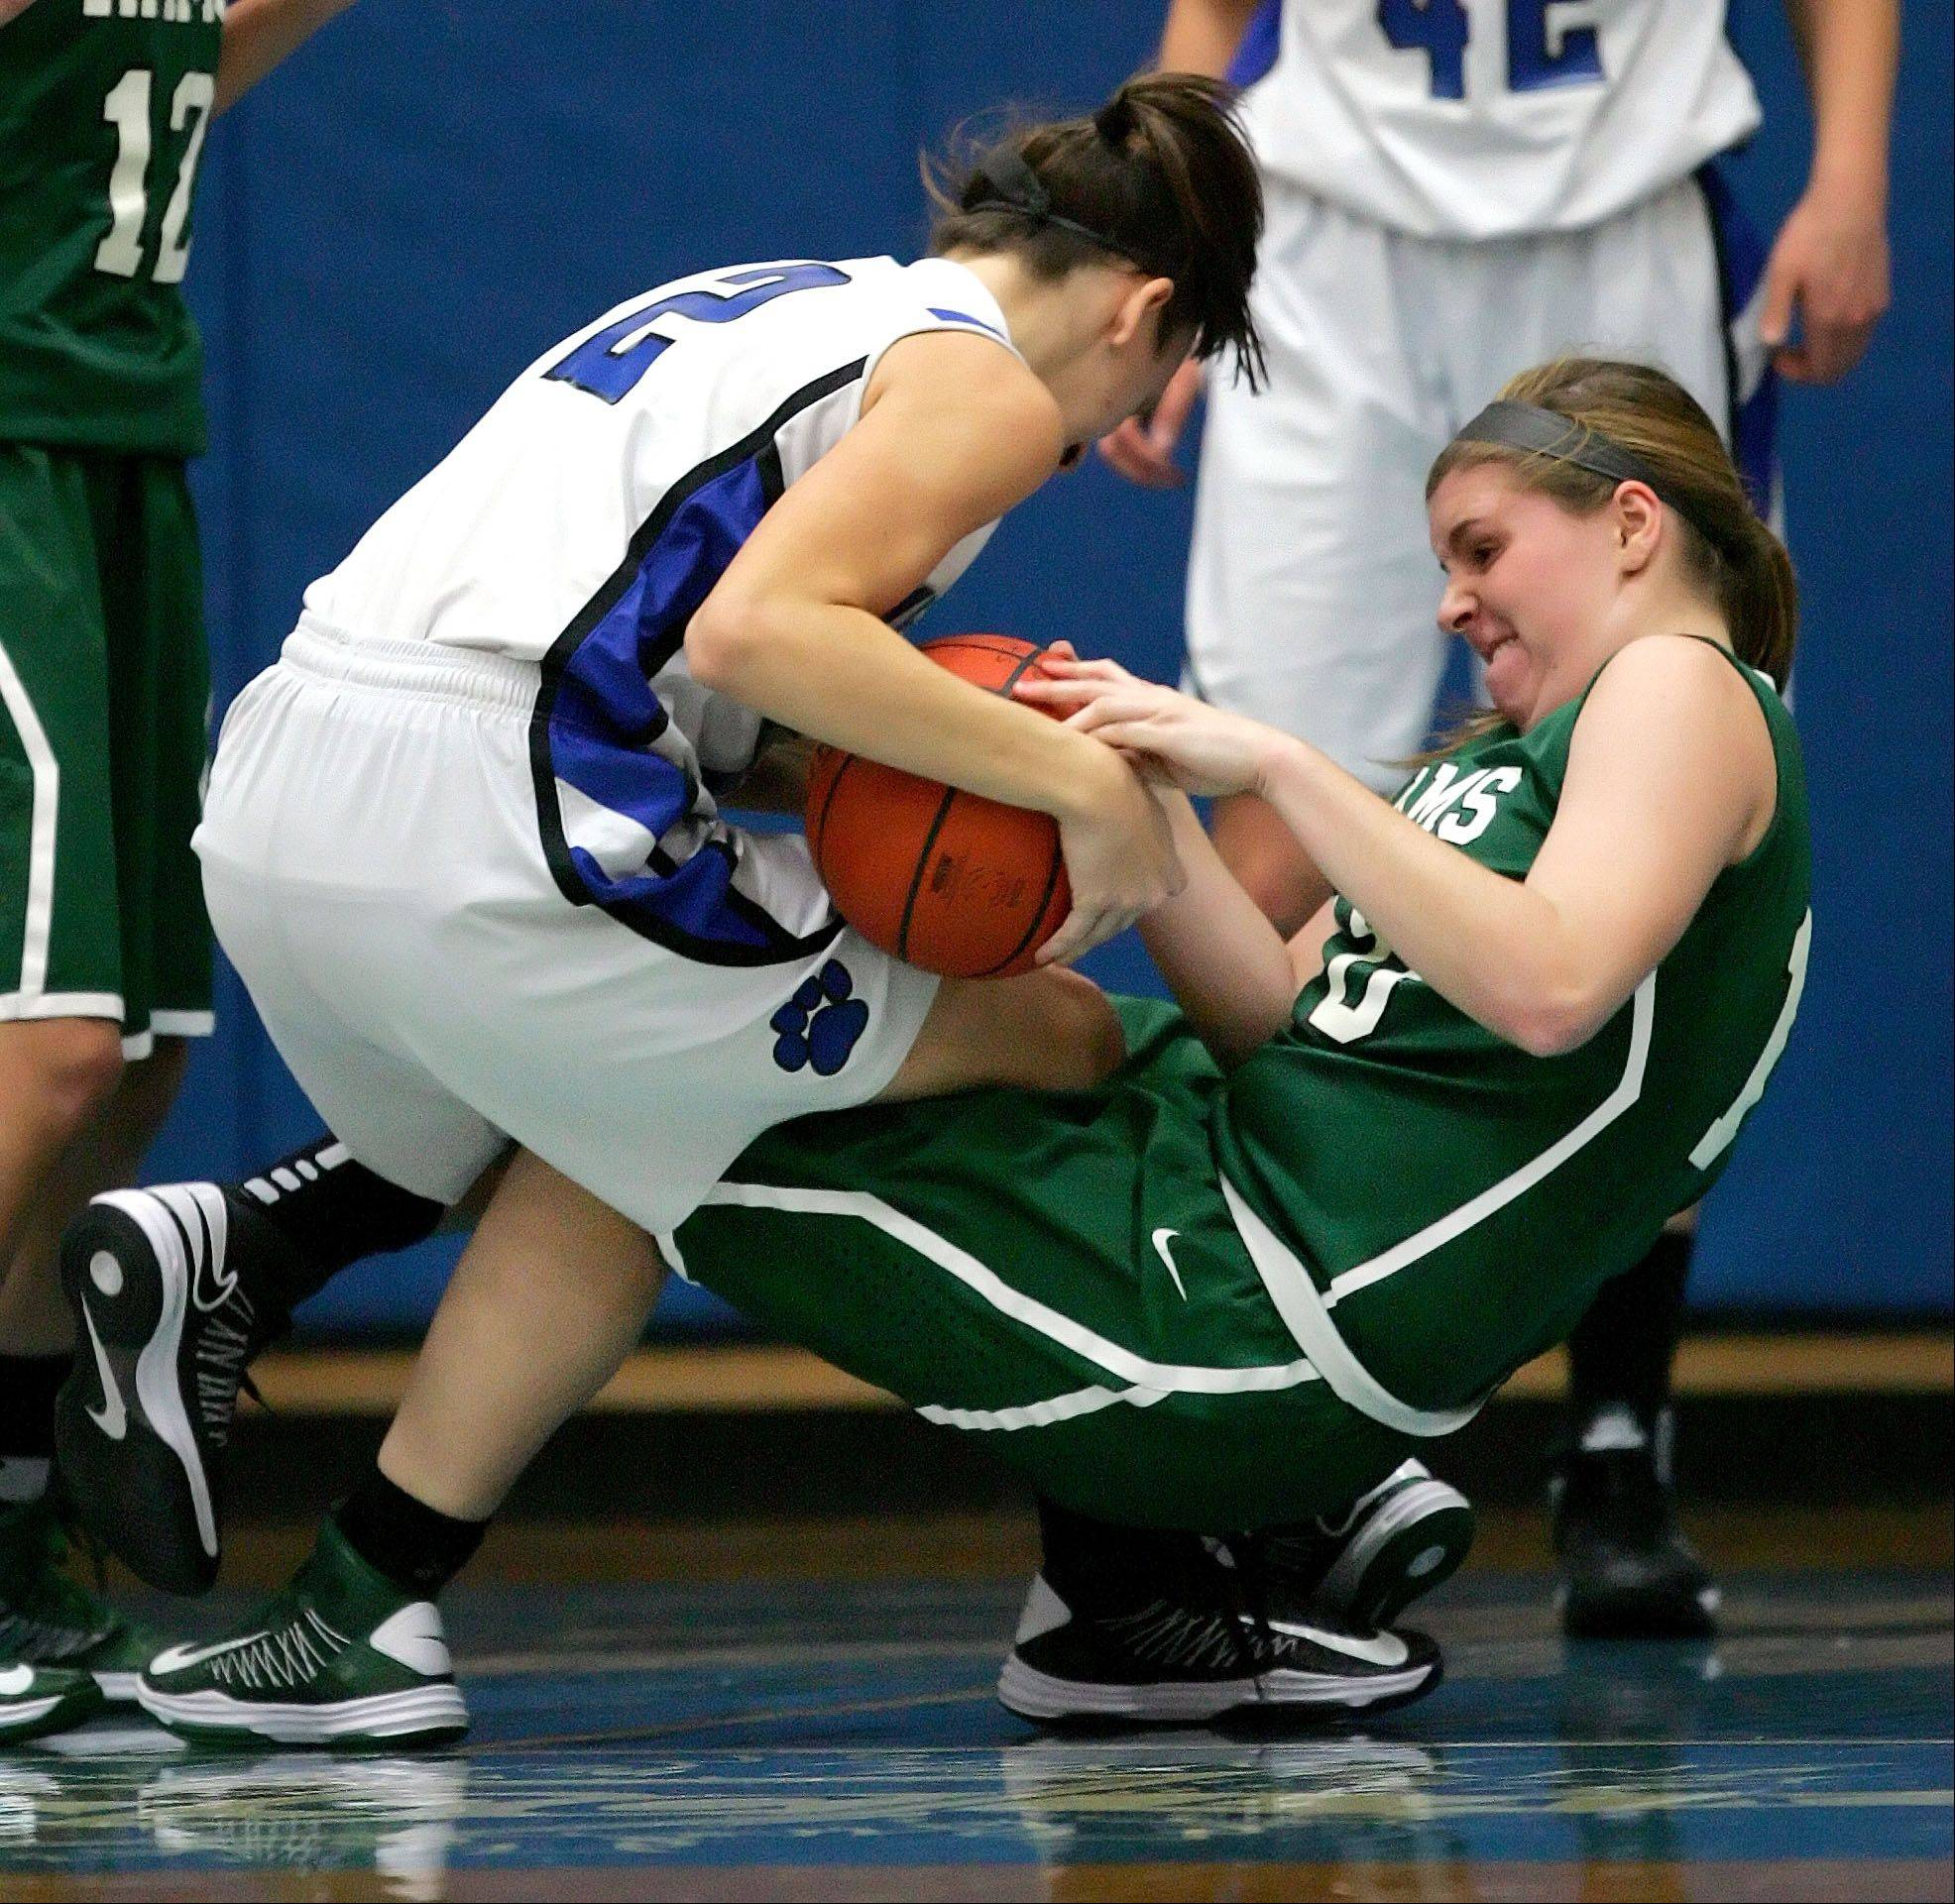 Vernon Hills' Alina Lehocky , left, and Grayslake Central's Maddy Miller battle for a loose ball .